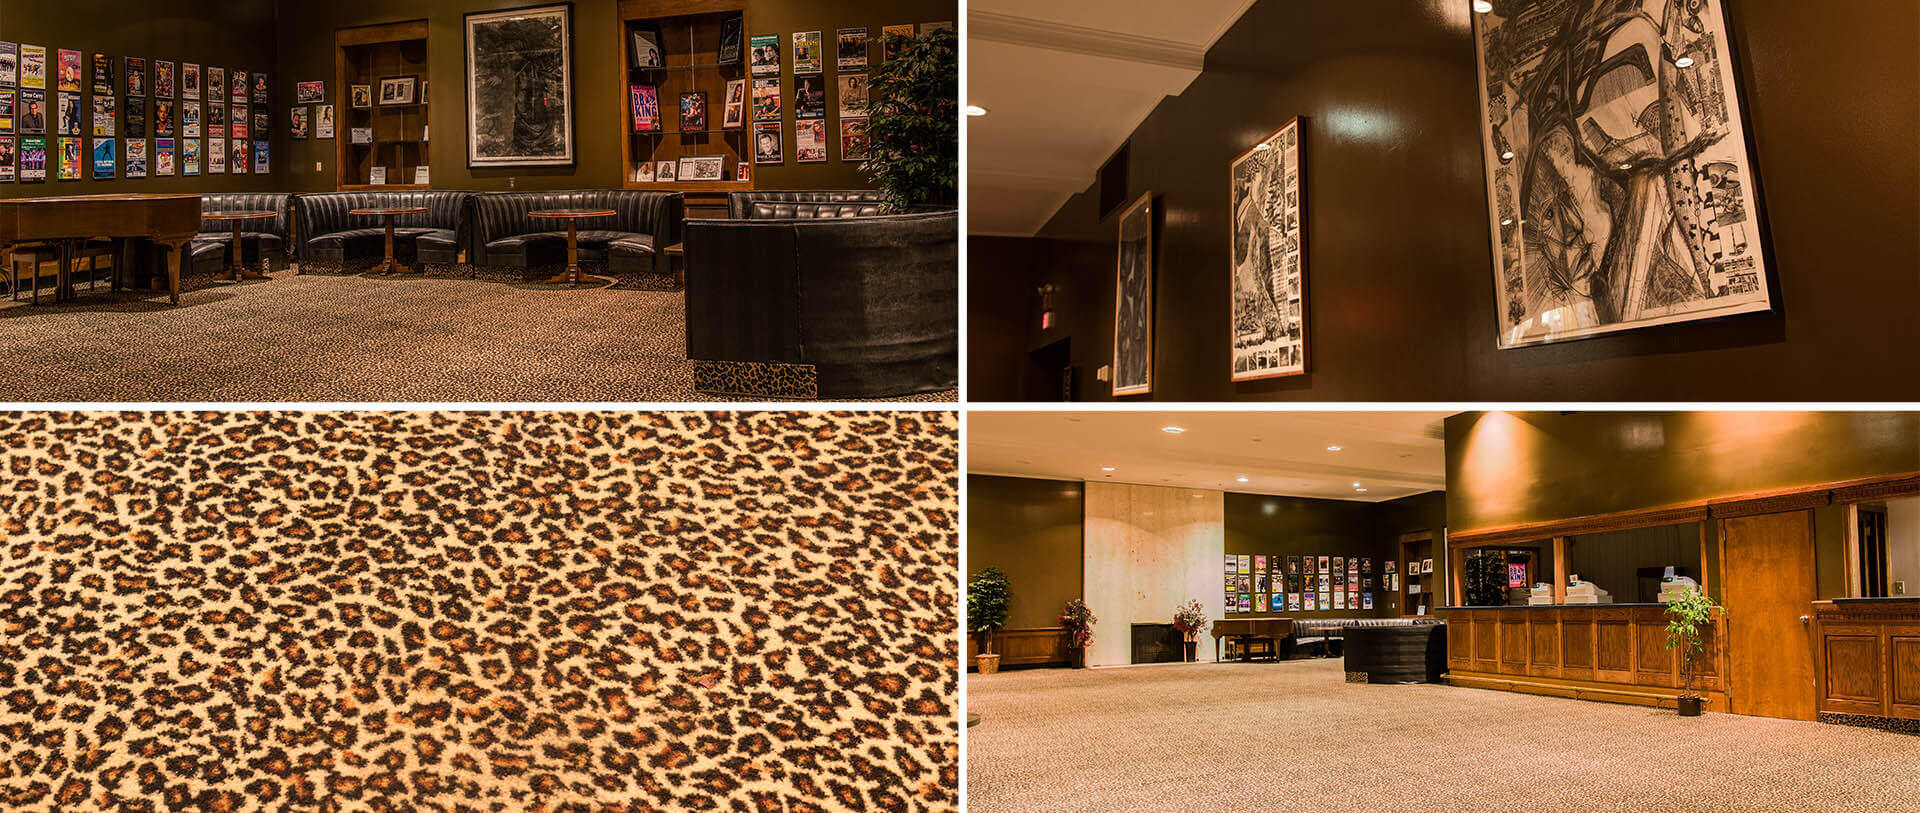 leopard lounge at the temple theatre